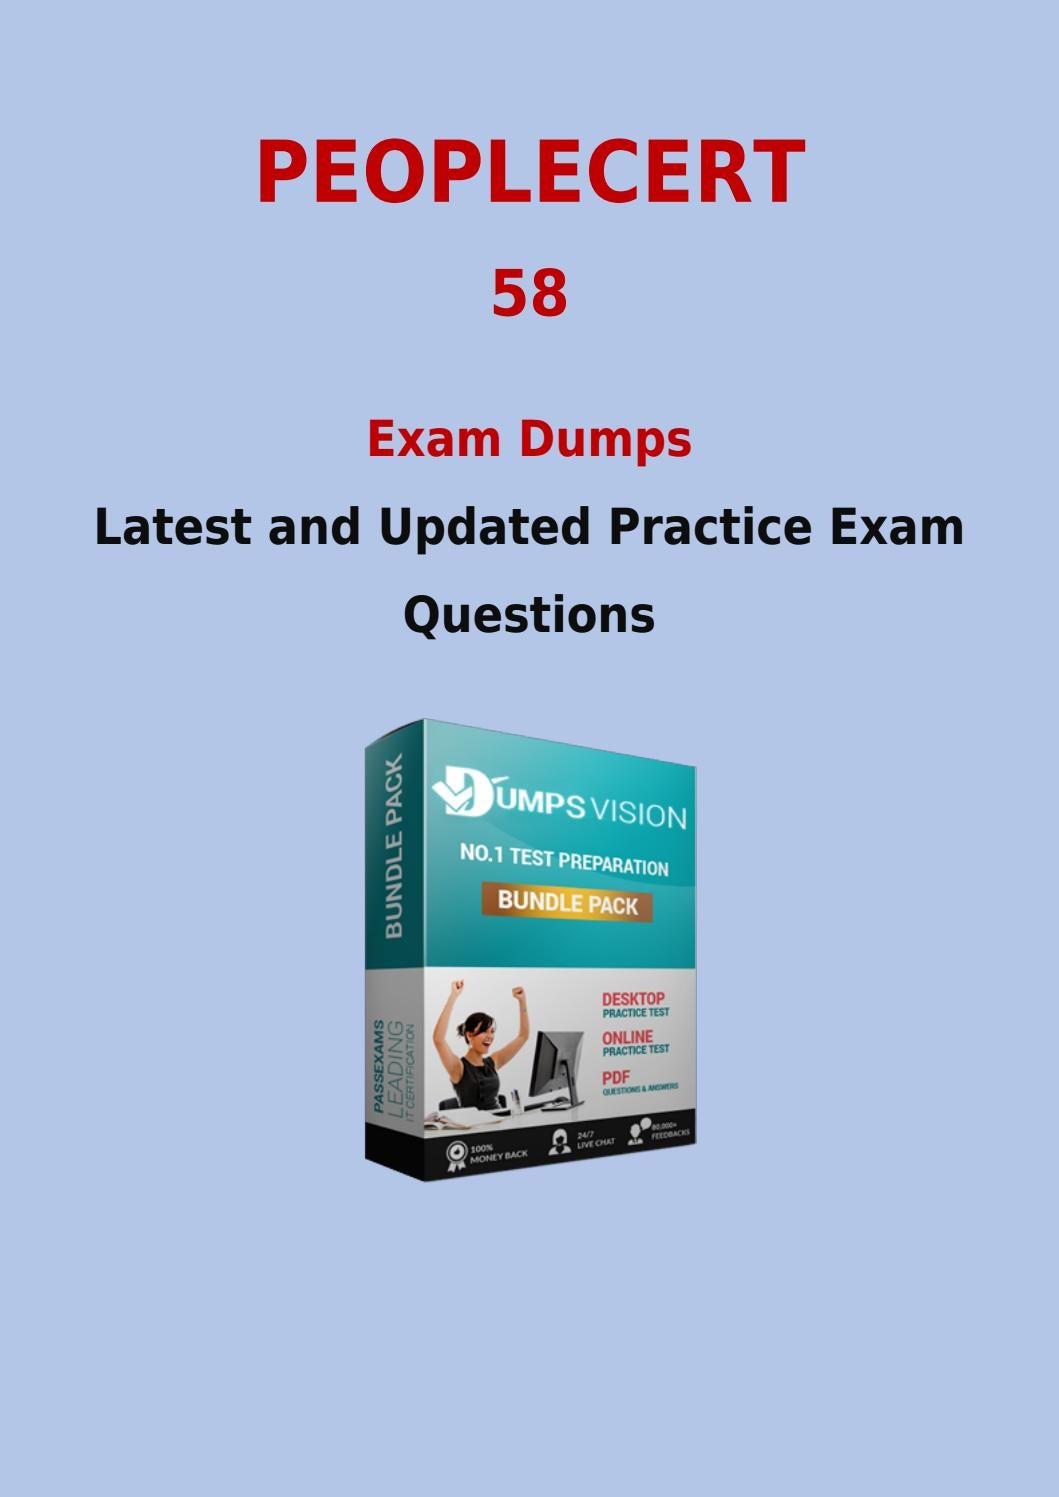 Peoplecert 58 Exam Training Material To Pass With 58 New Questions